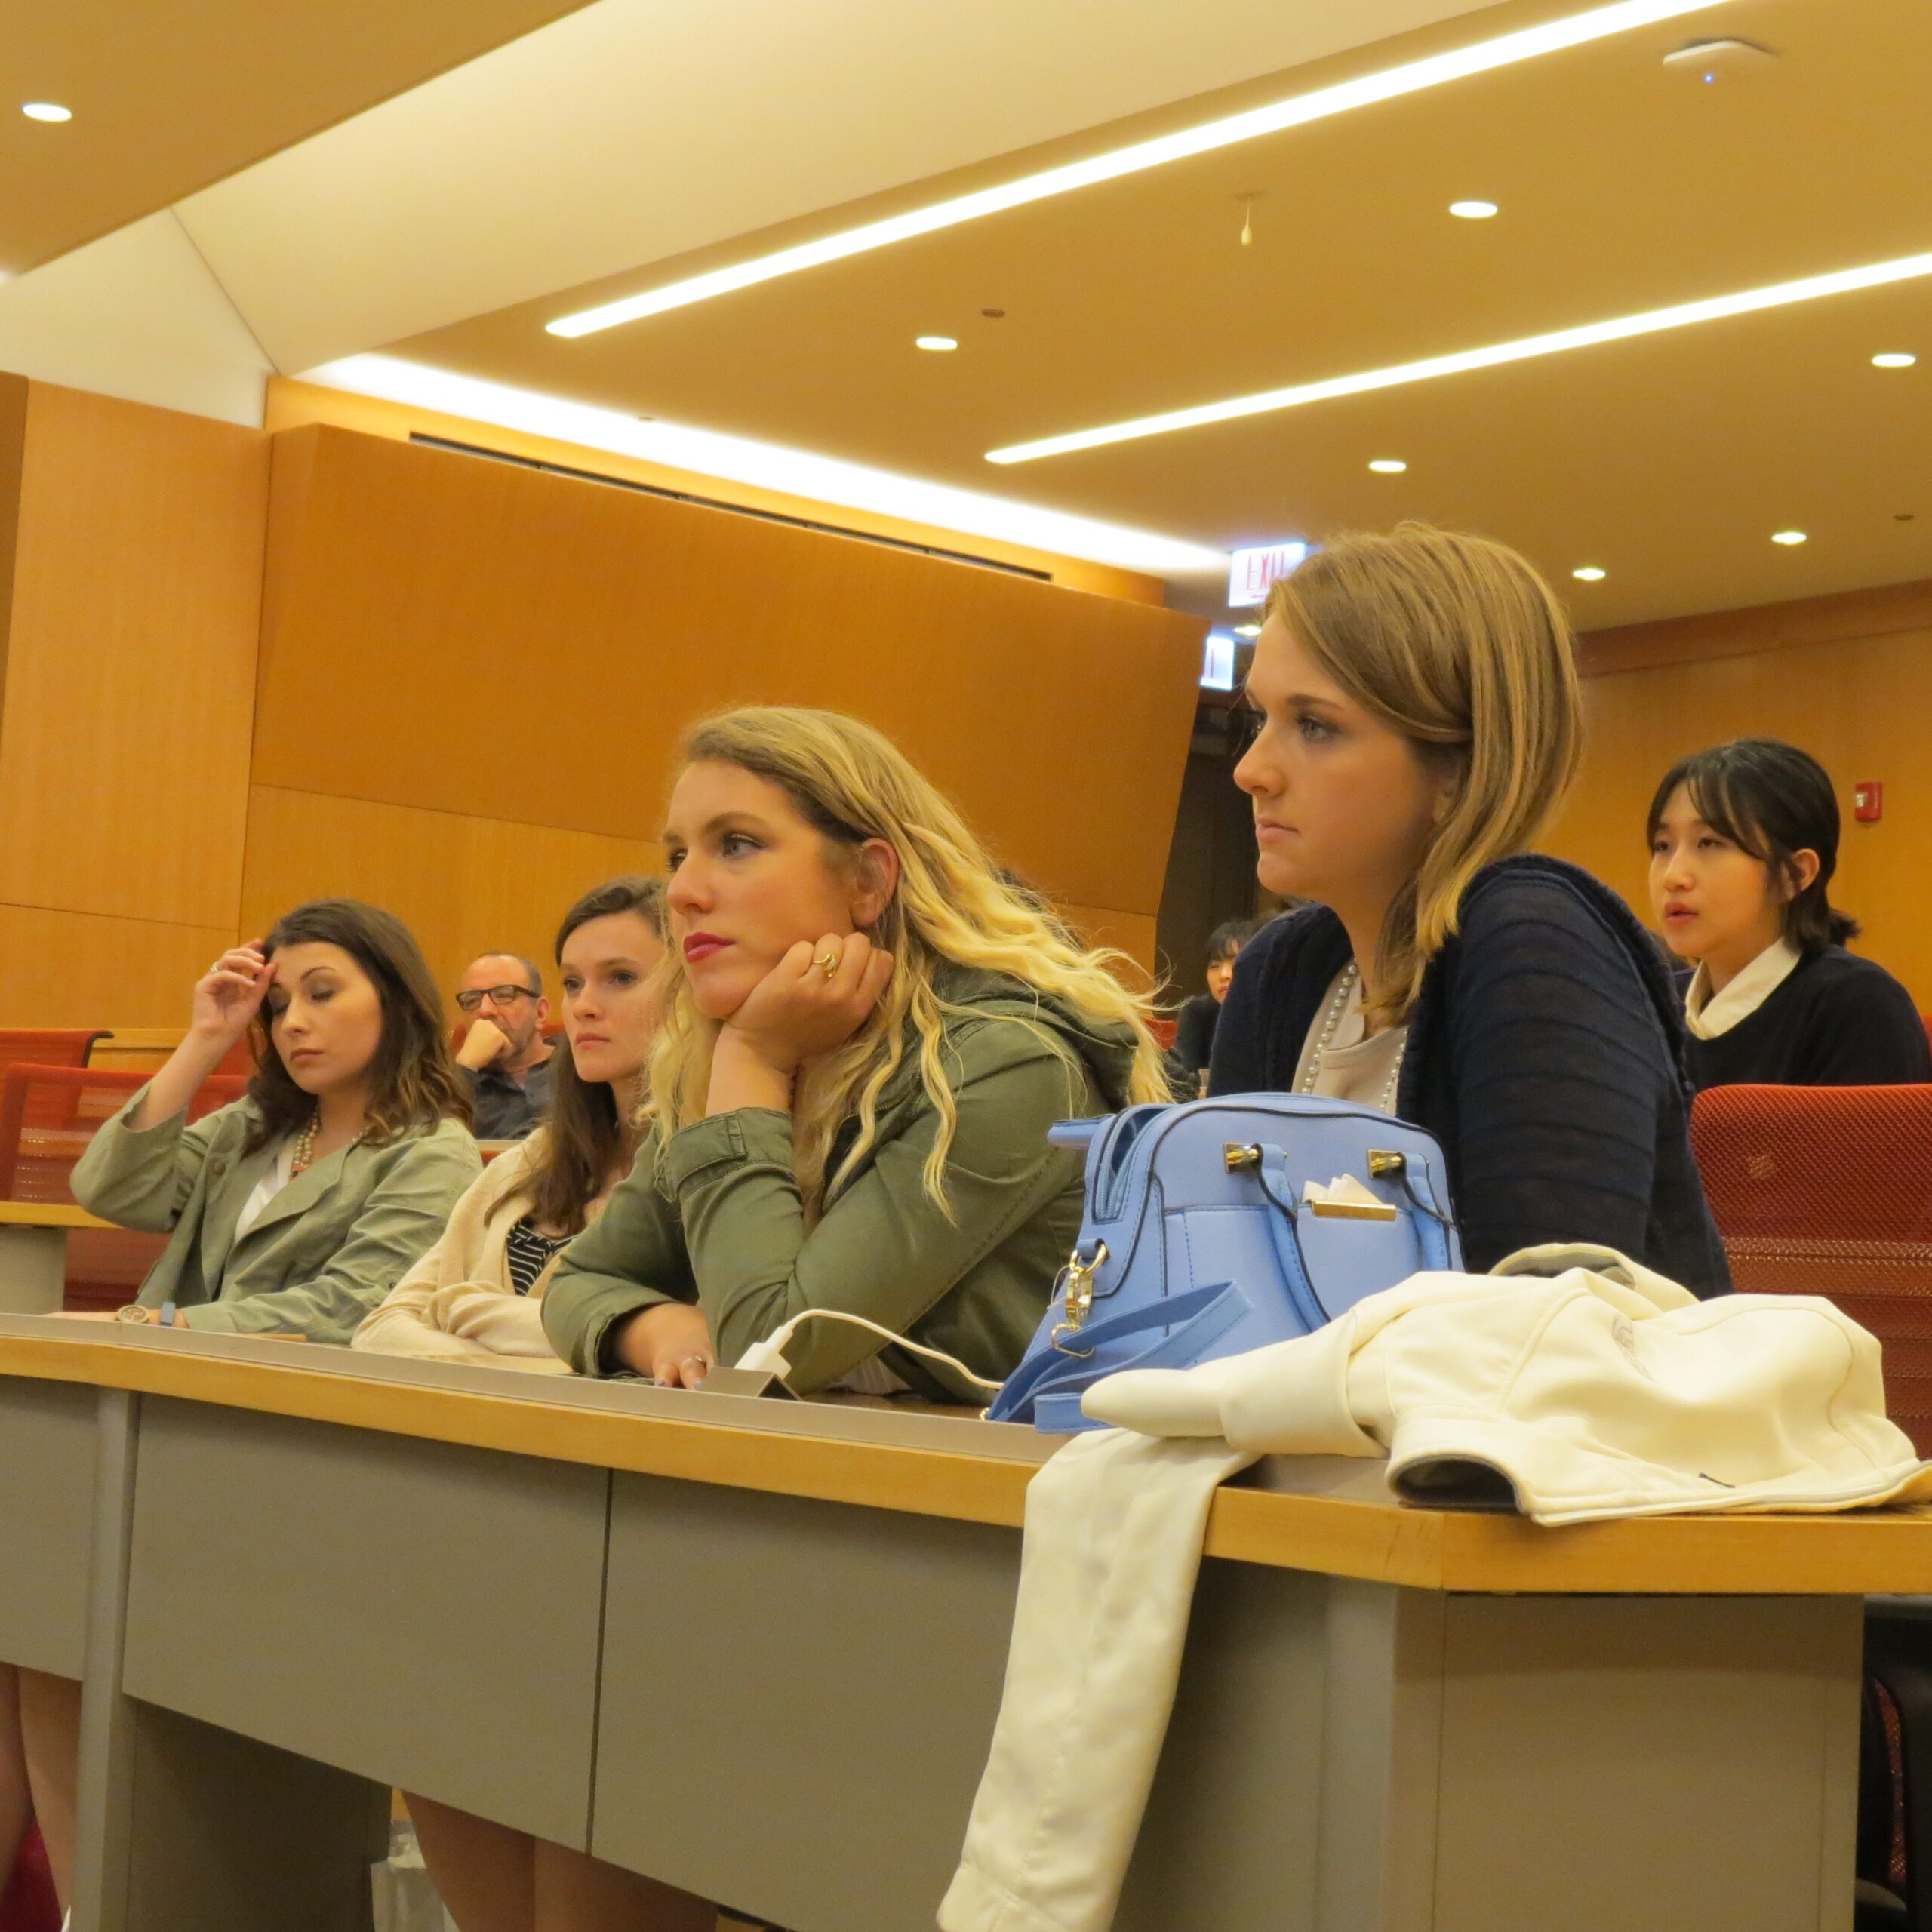 students listen to presentation in lecture hall